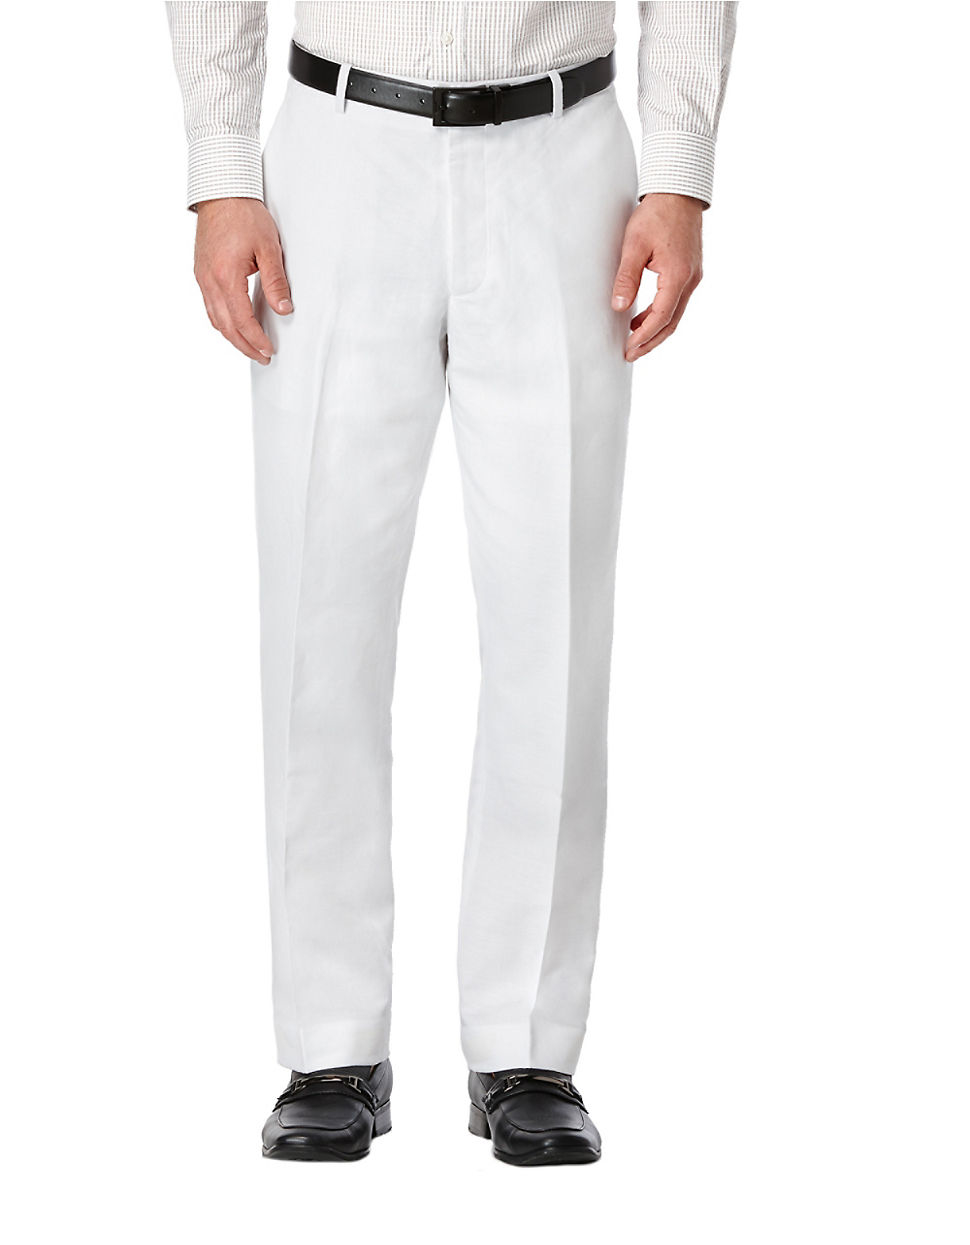 The big and tall man needs pants and shorts that are great looking and great fitting. At skachat-clas.cf, we carry the latest styles at value prices from such notable brands as CornerStone, Falcon Bay, Cutter & Buck, Sport-Tek, District Threads, and more.